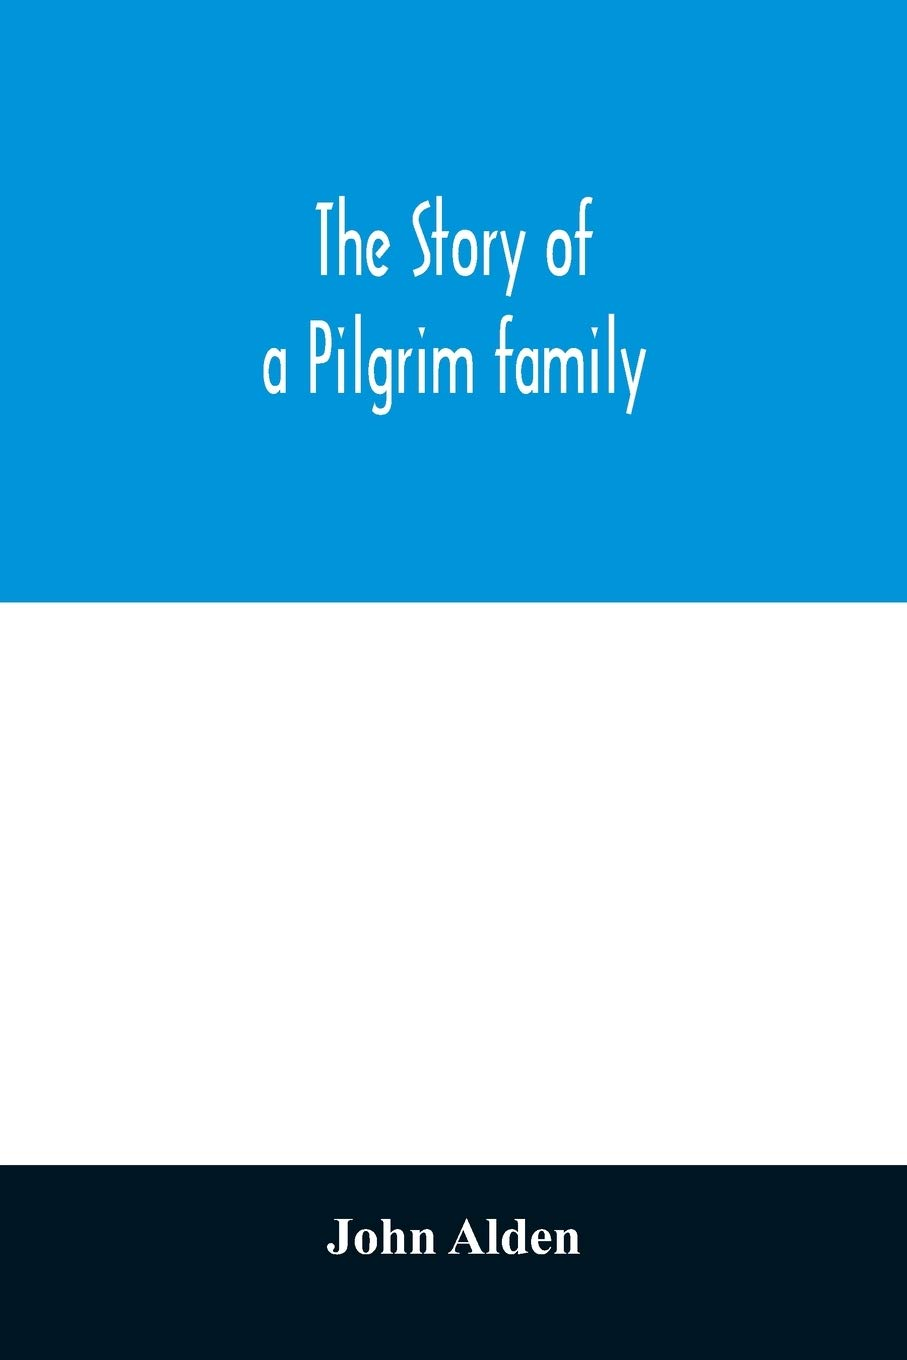 The story of a Pilgrim family. From the Mayflower to the present time; with autobiography, recollections, letters, incidents, and genealogy of the author, Rev. John Alden, in his 83d year